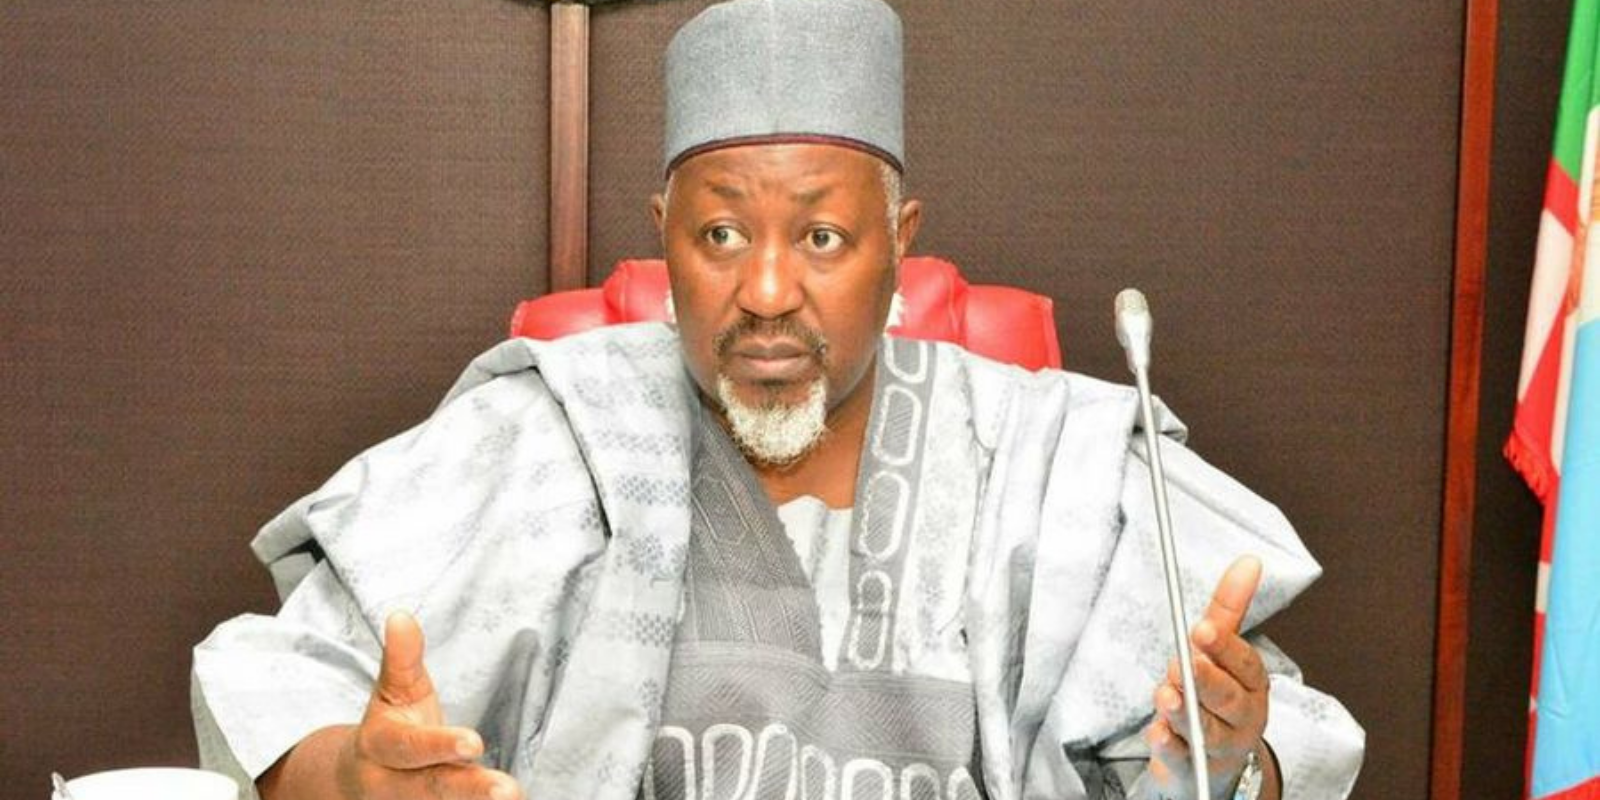 Badaru Abubakar is the governor of which state?